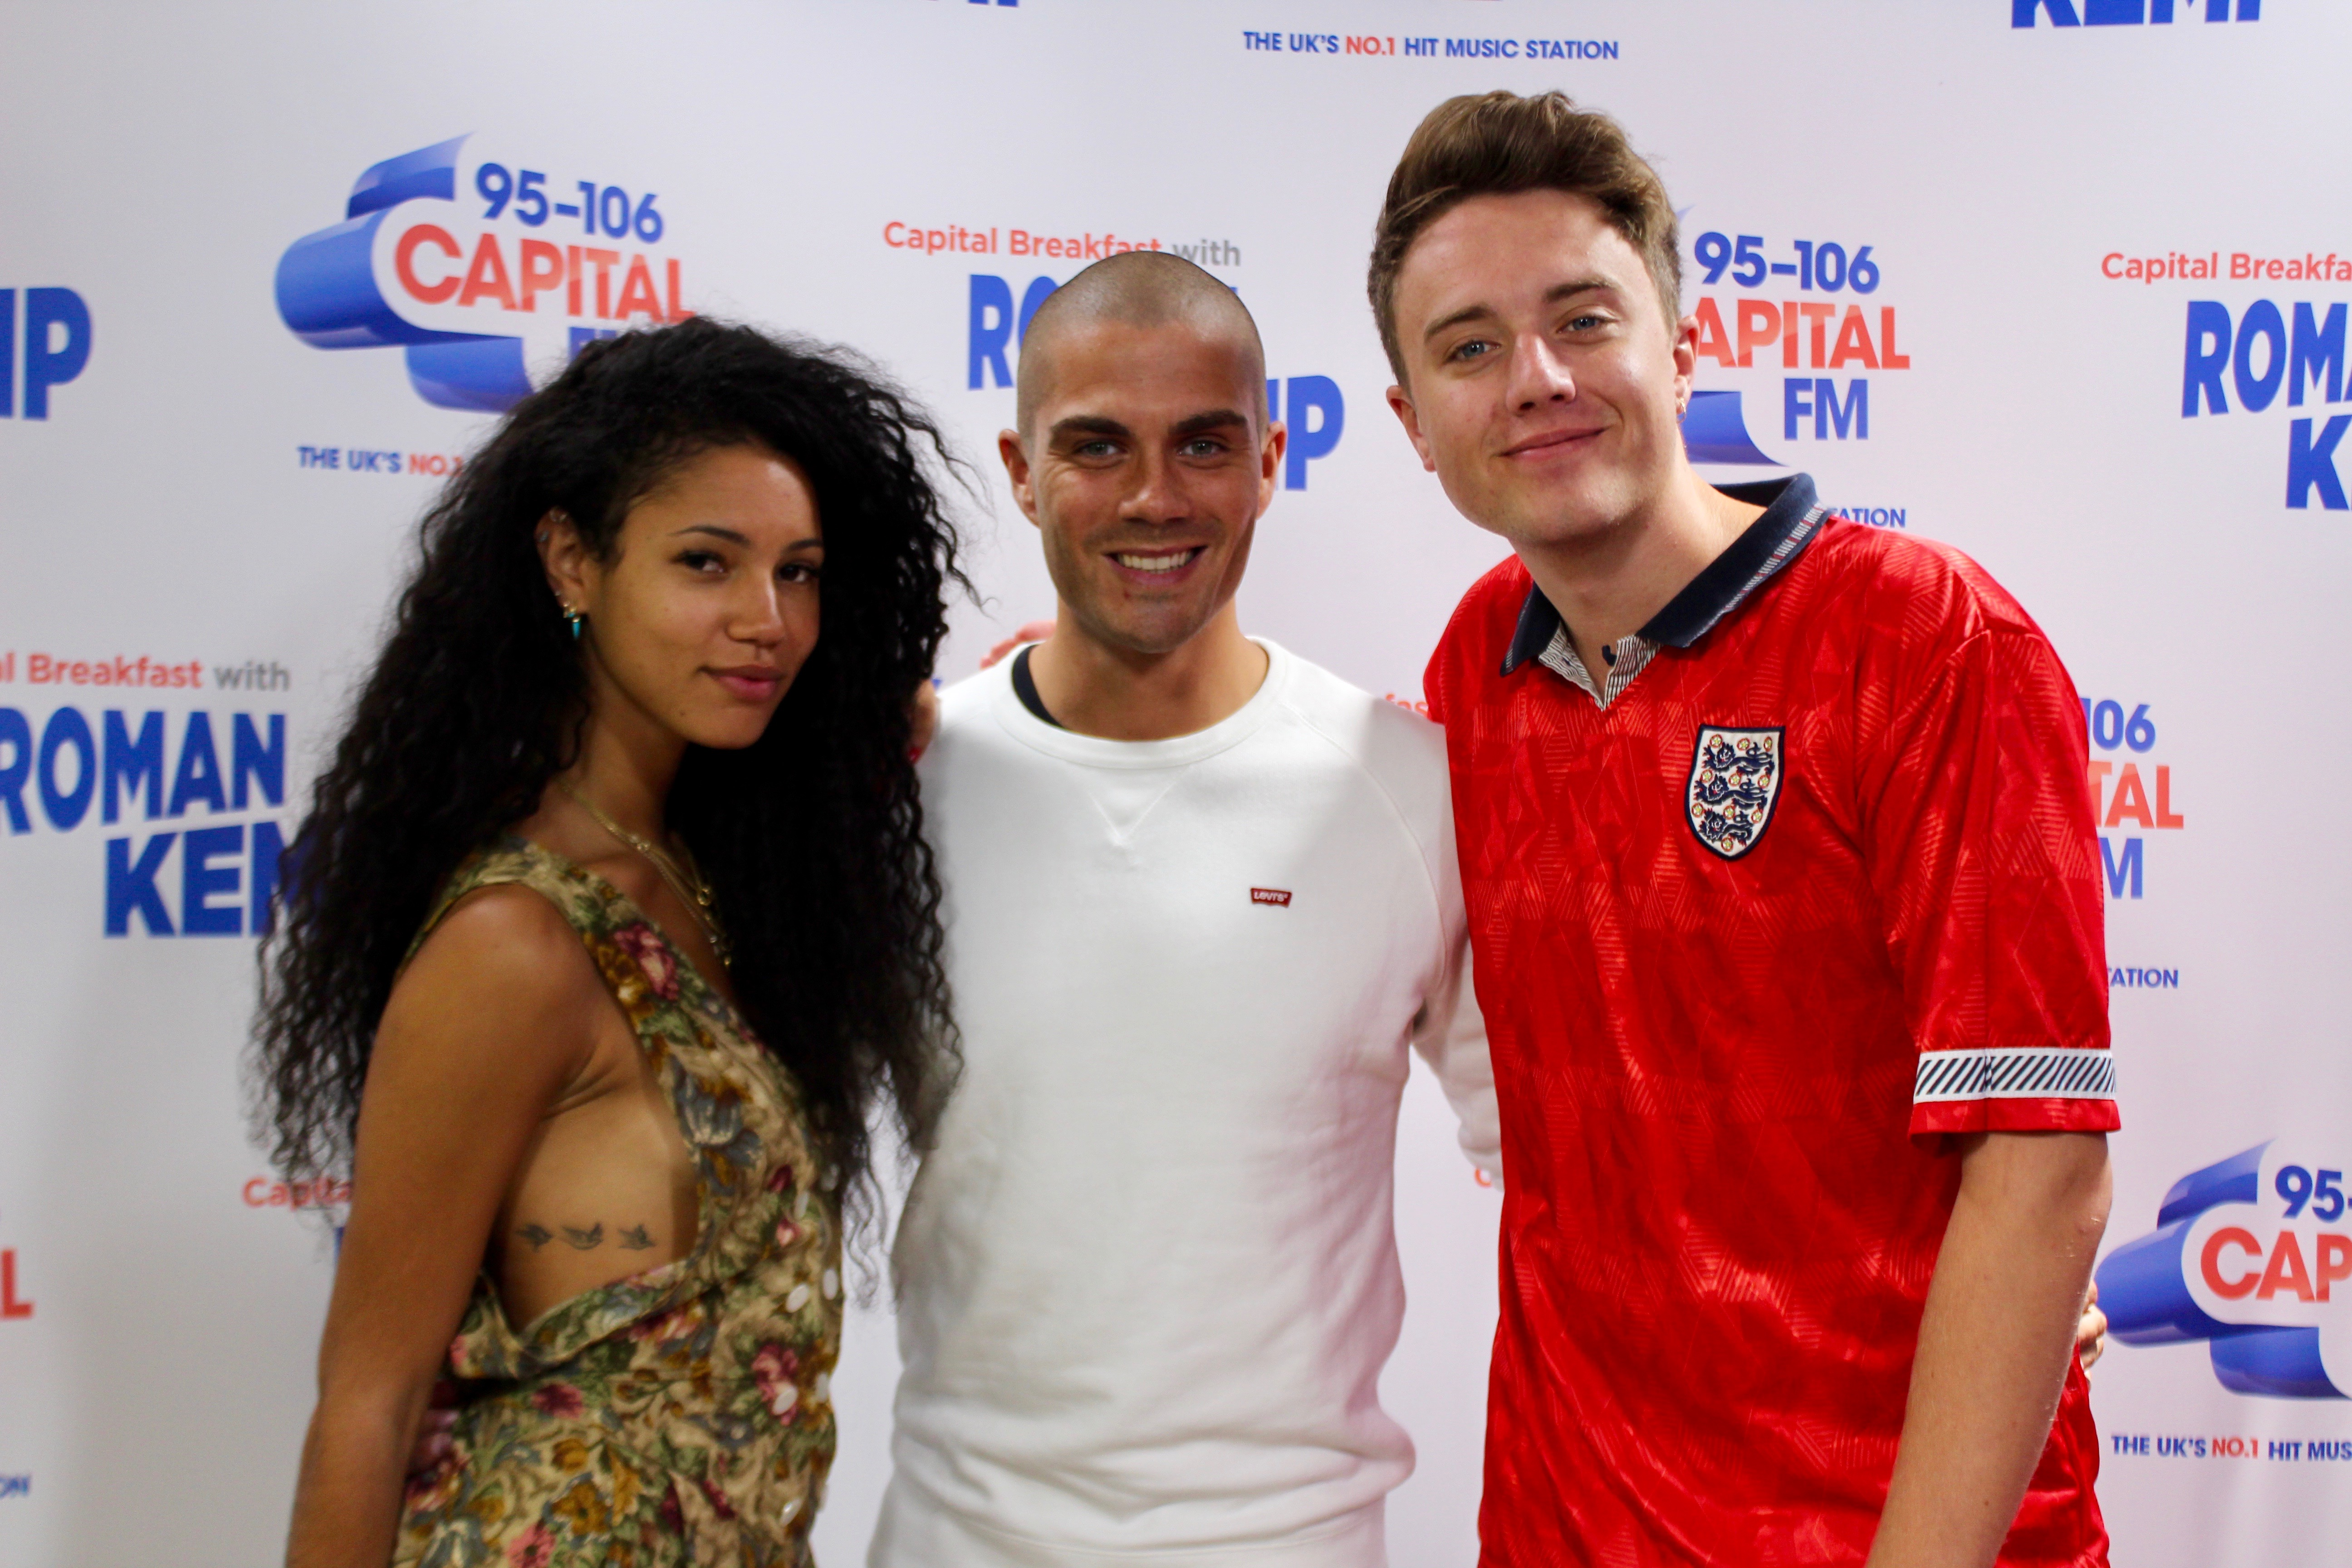 Max George on Capital Breakfast w/ Roman Kemp